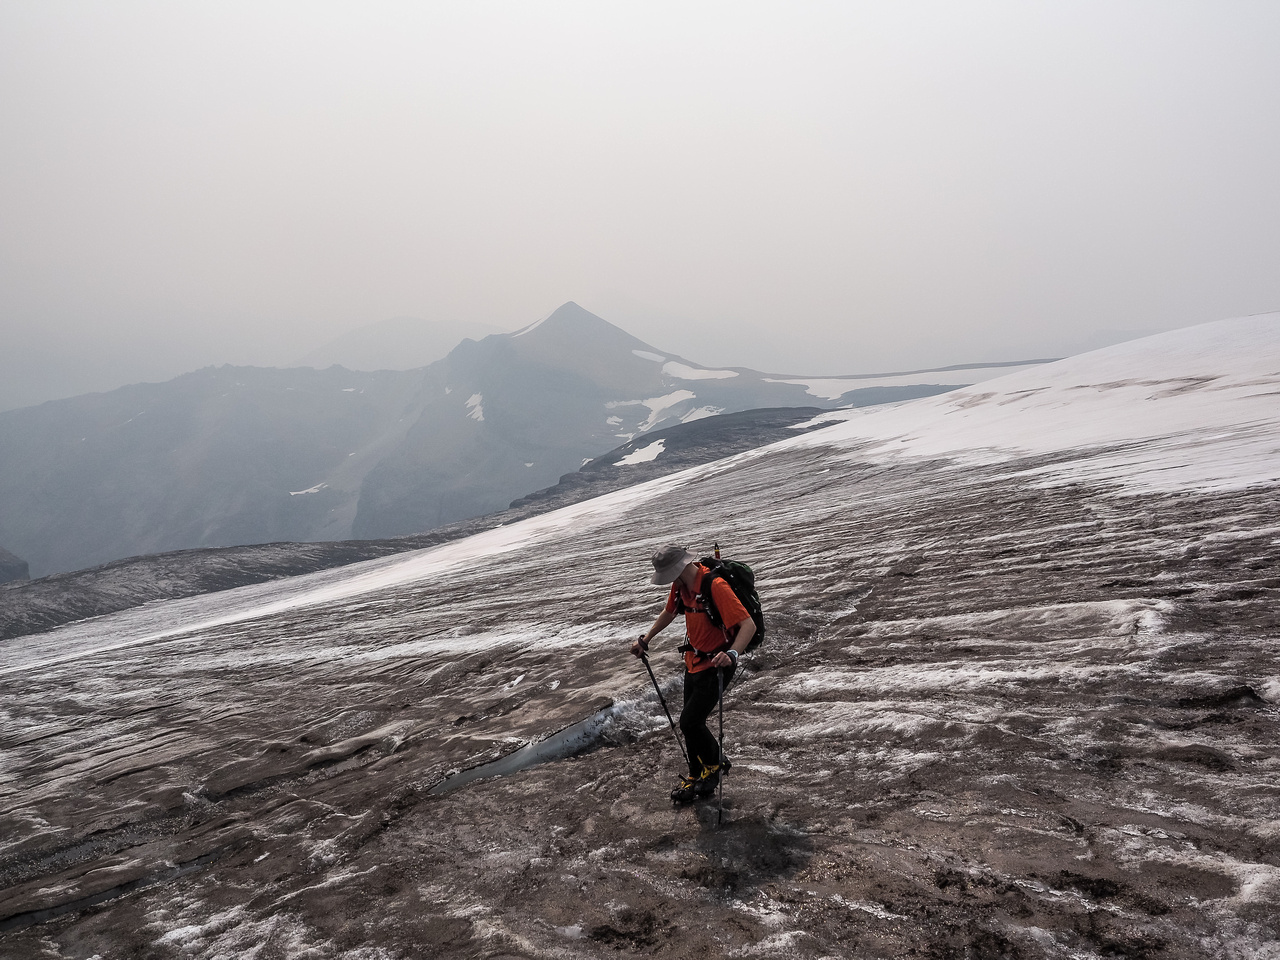 Phil crosses the glacier with Conical trying its best to show up through the choking smoke.